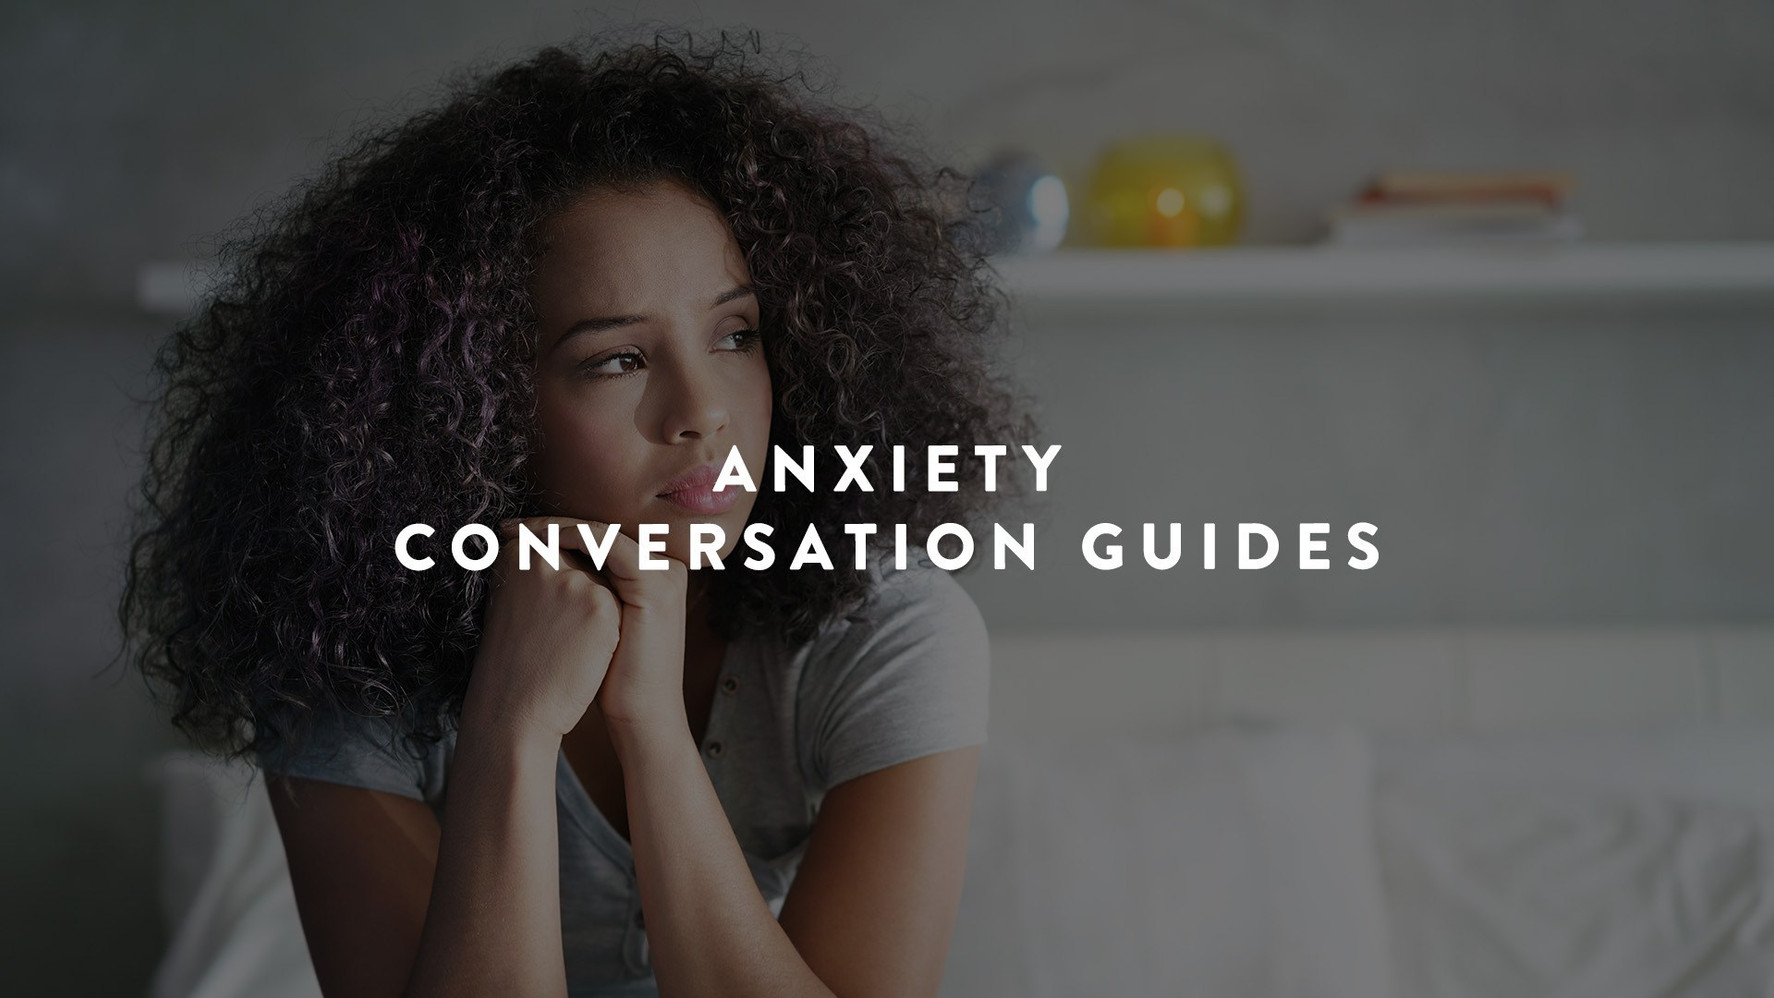 Anxiety Conversation Guides